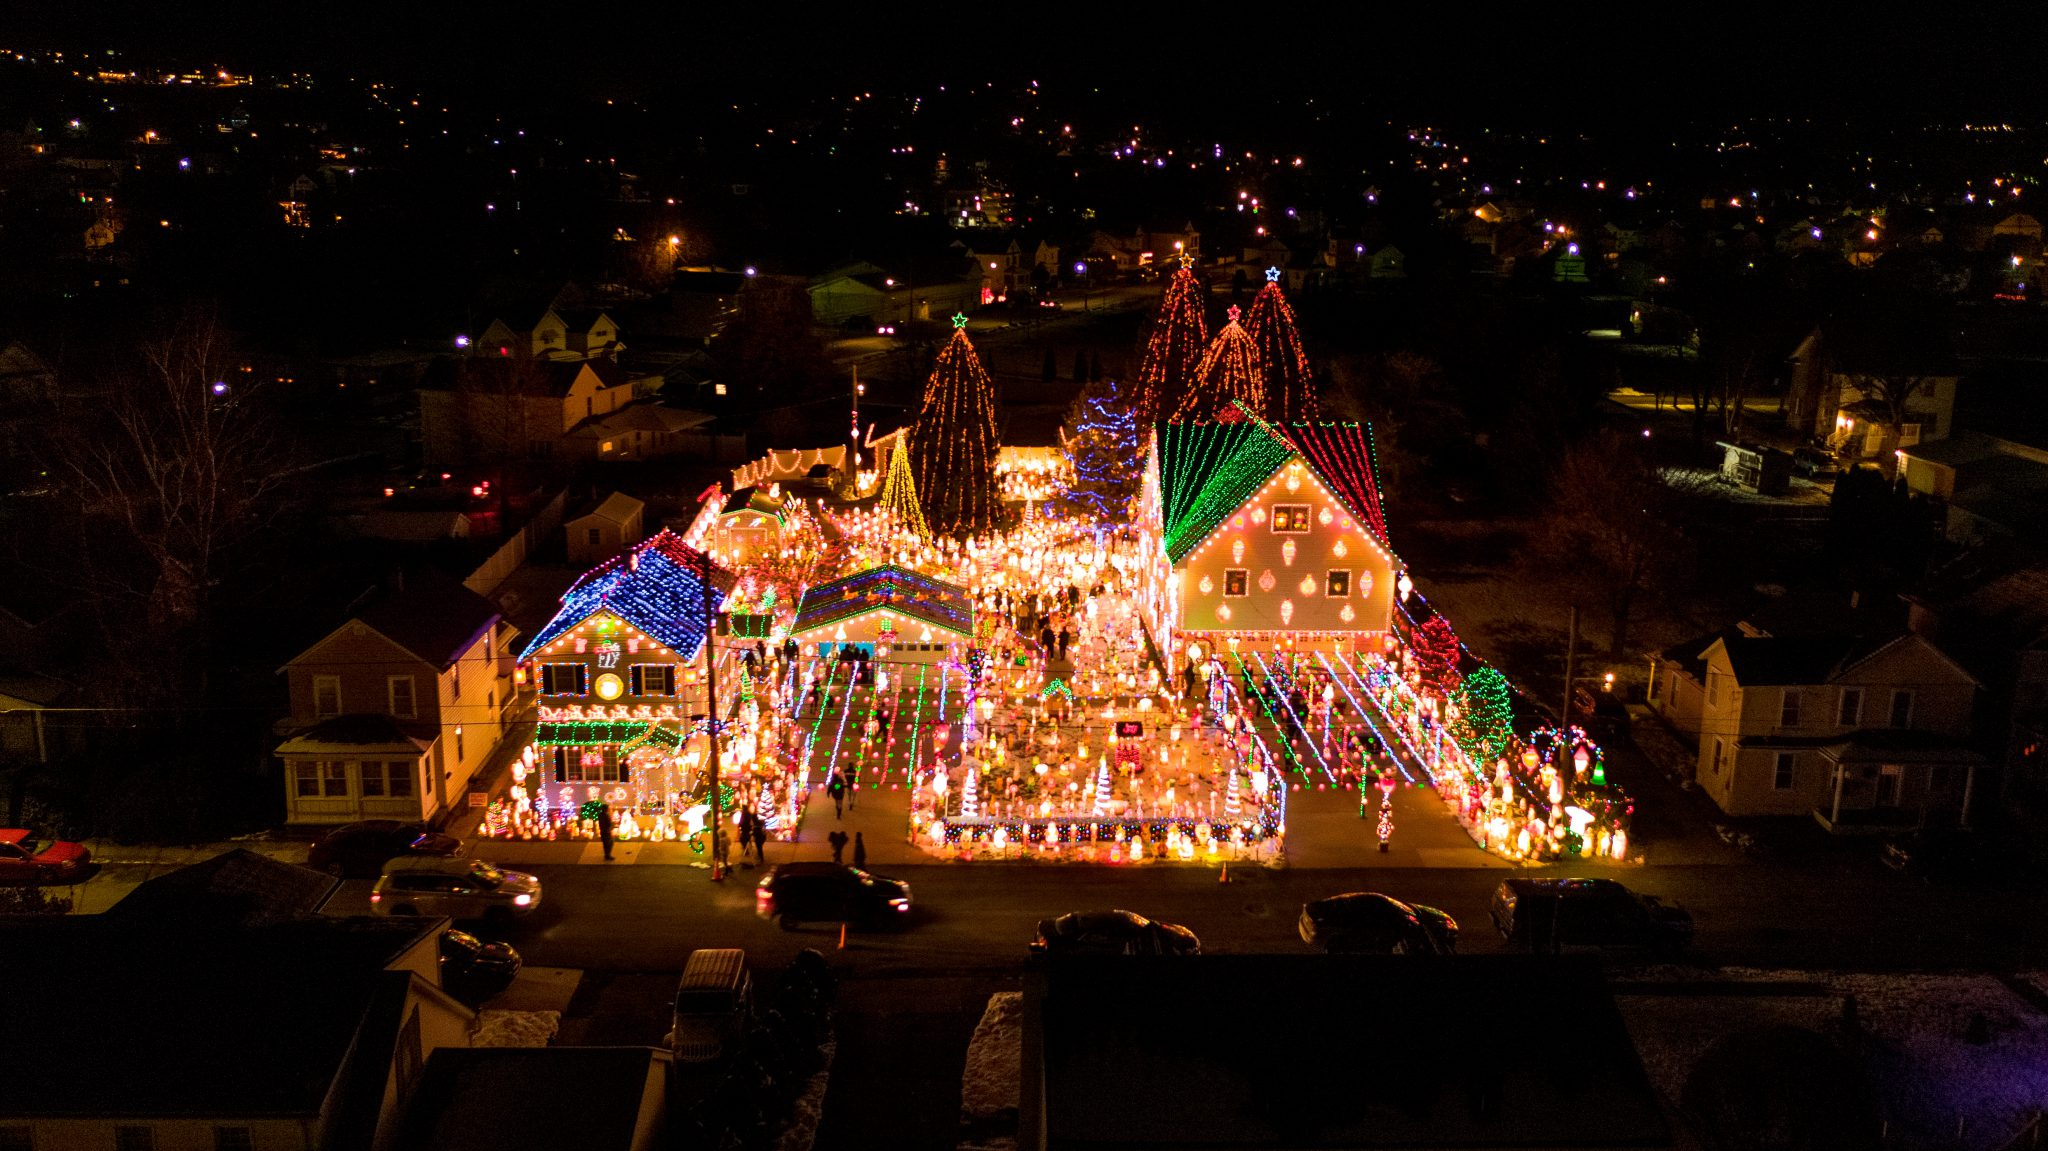 Best Christmas Displays in Lackawanna County PA